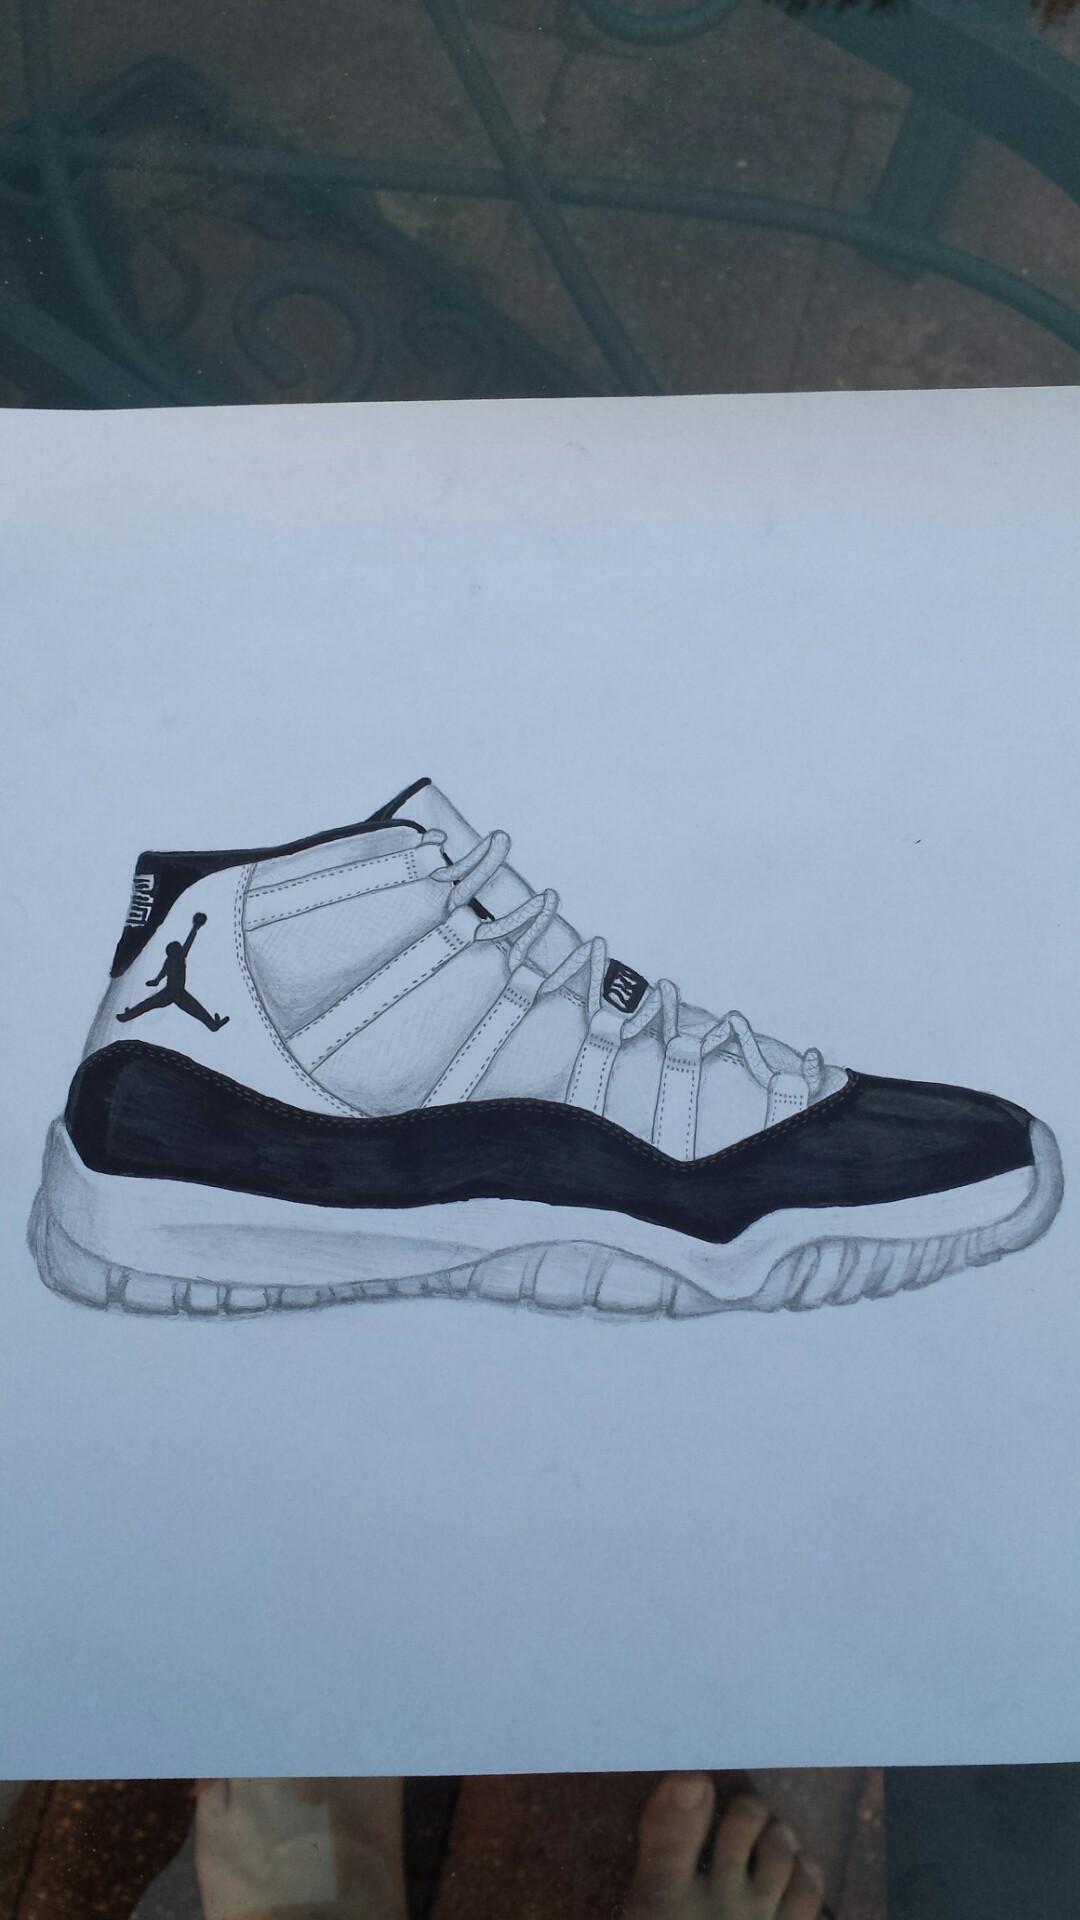 1080x1920 Finished Drawing, Air Jordan 11 Concord. I'Ll Draw The Shoe